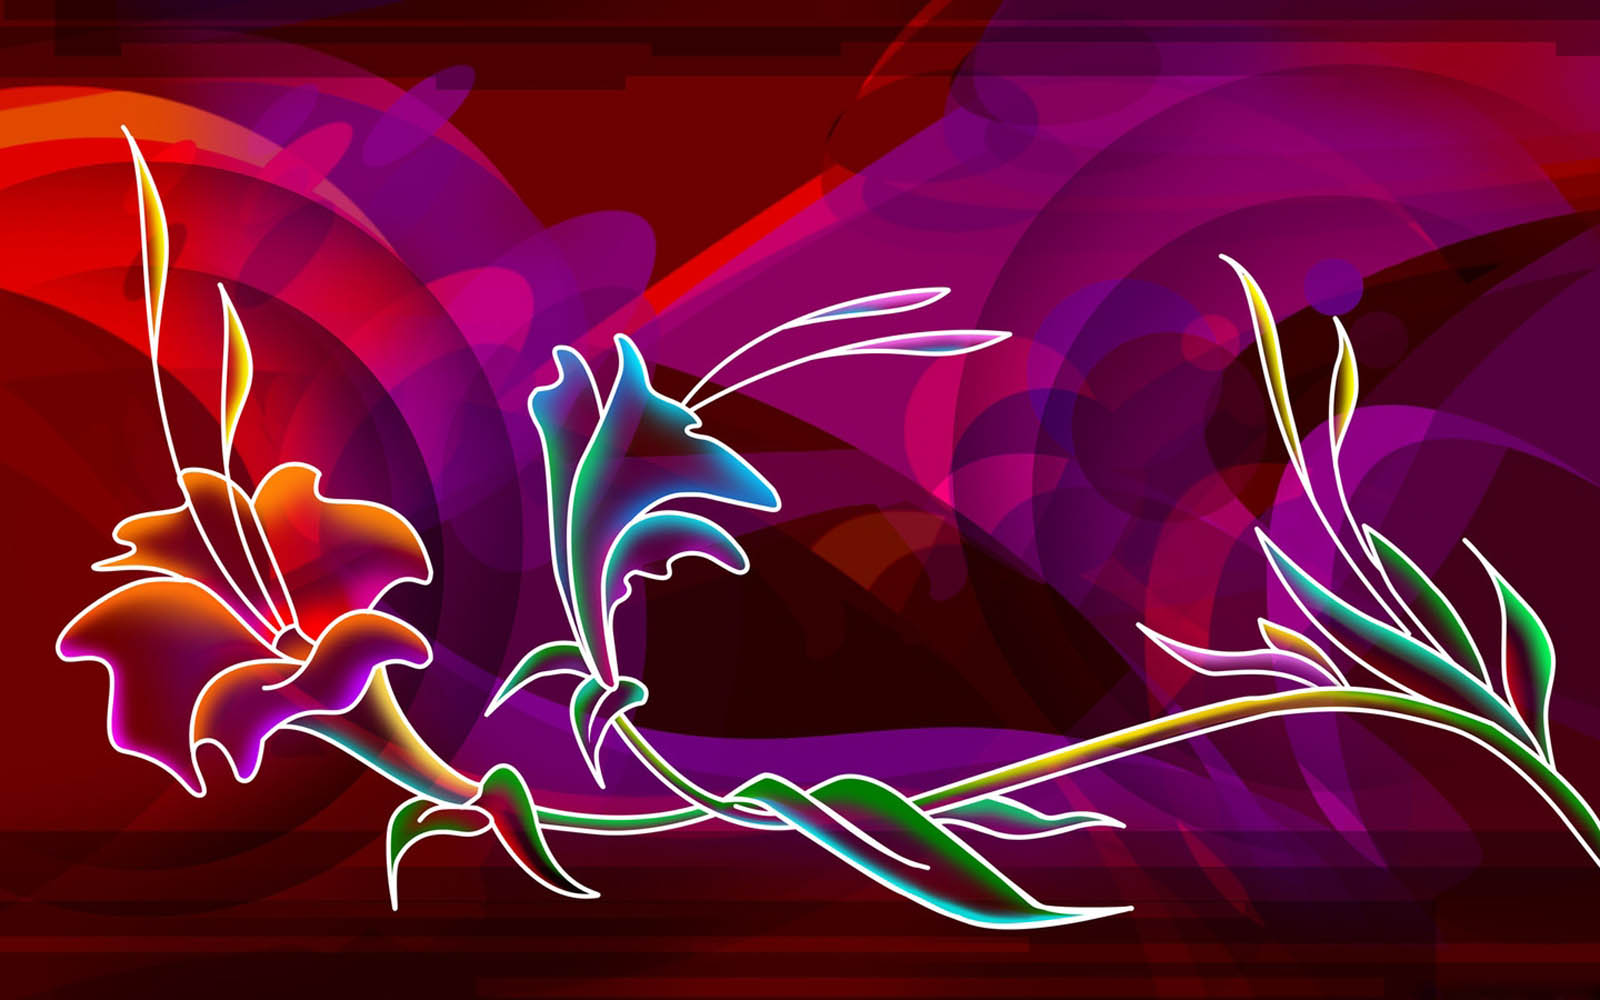 Neon Art Wallpapers Desktop Wallpaper 1600x1000